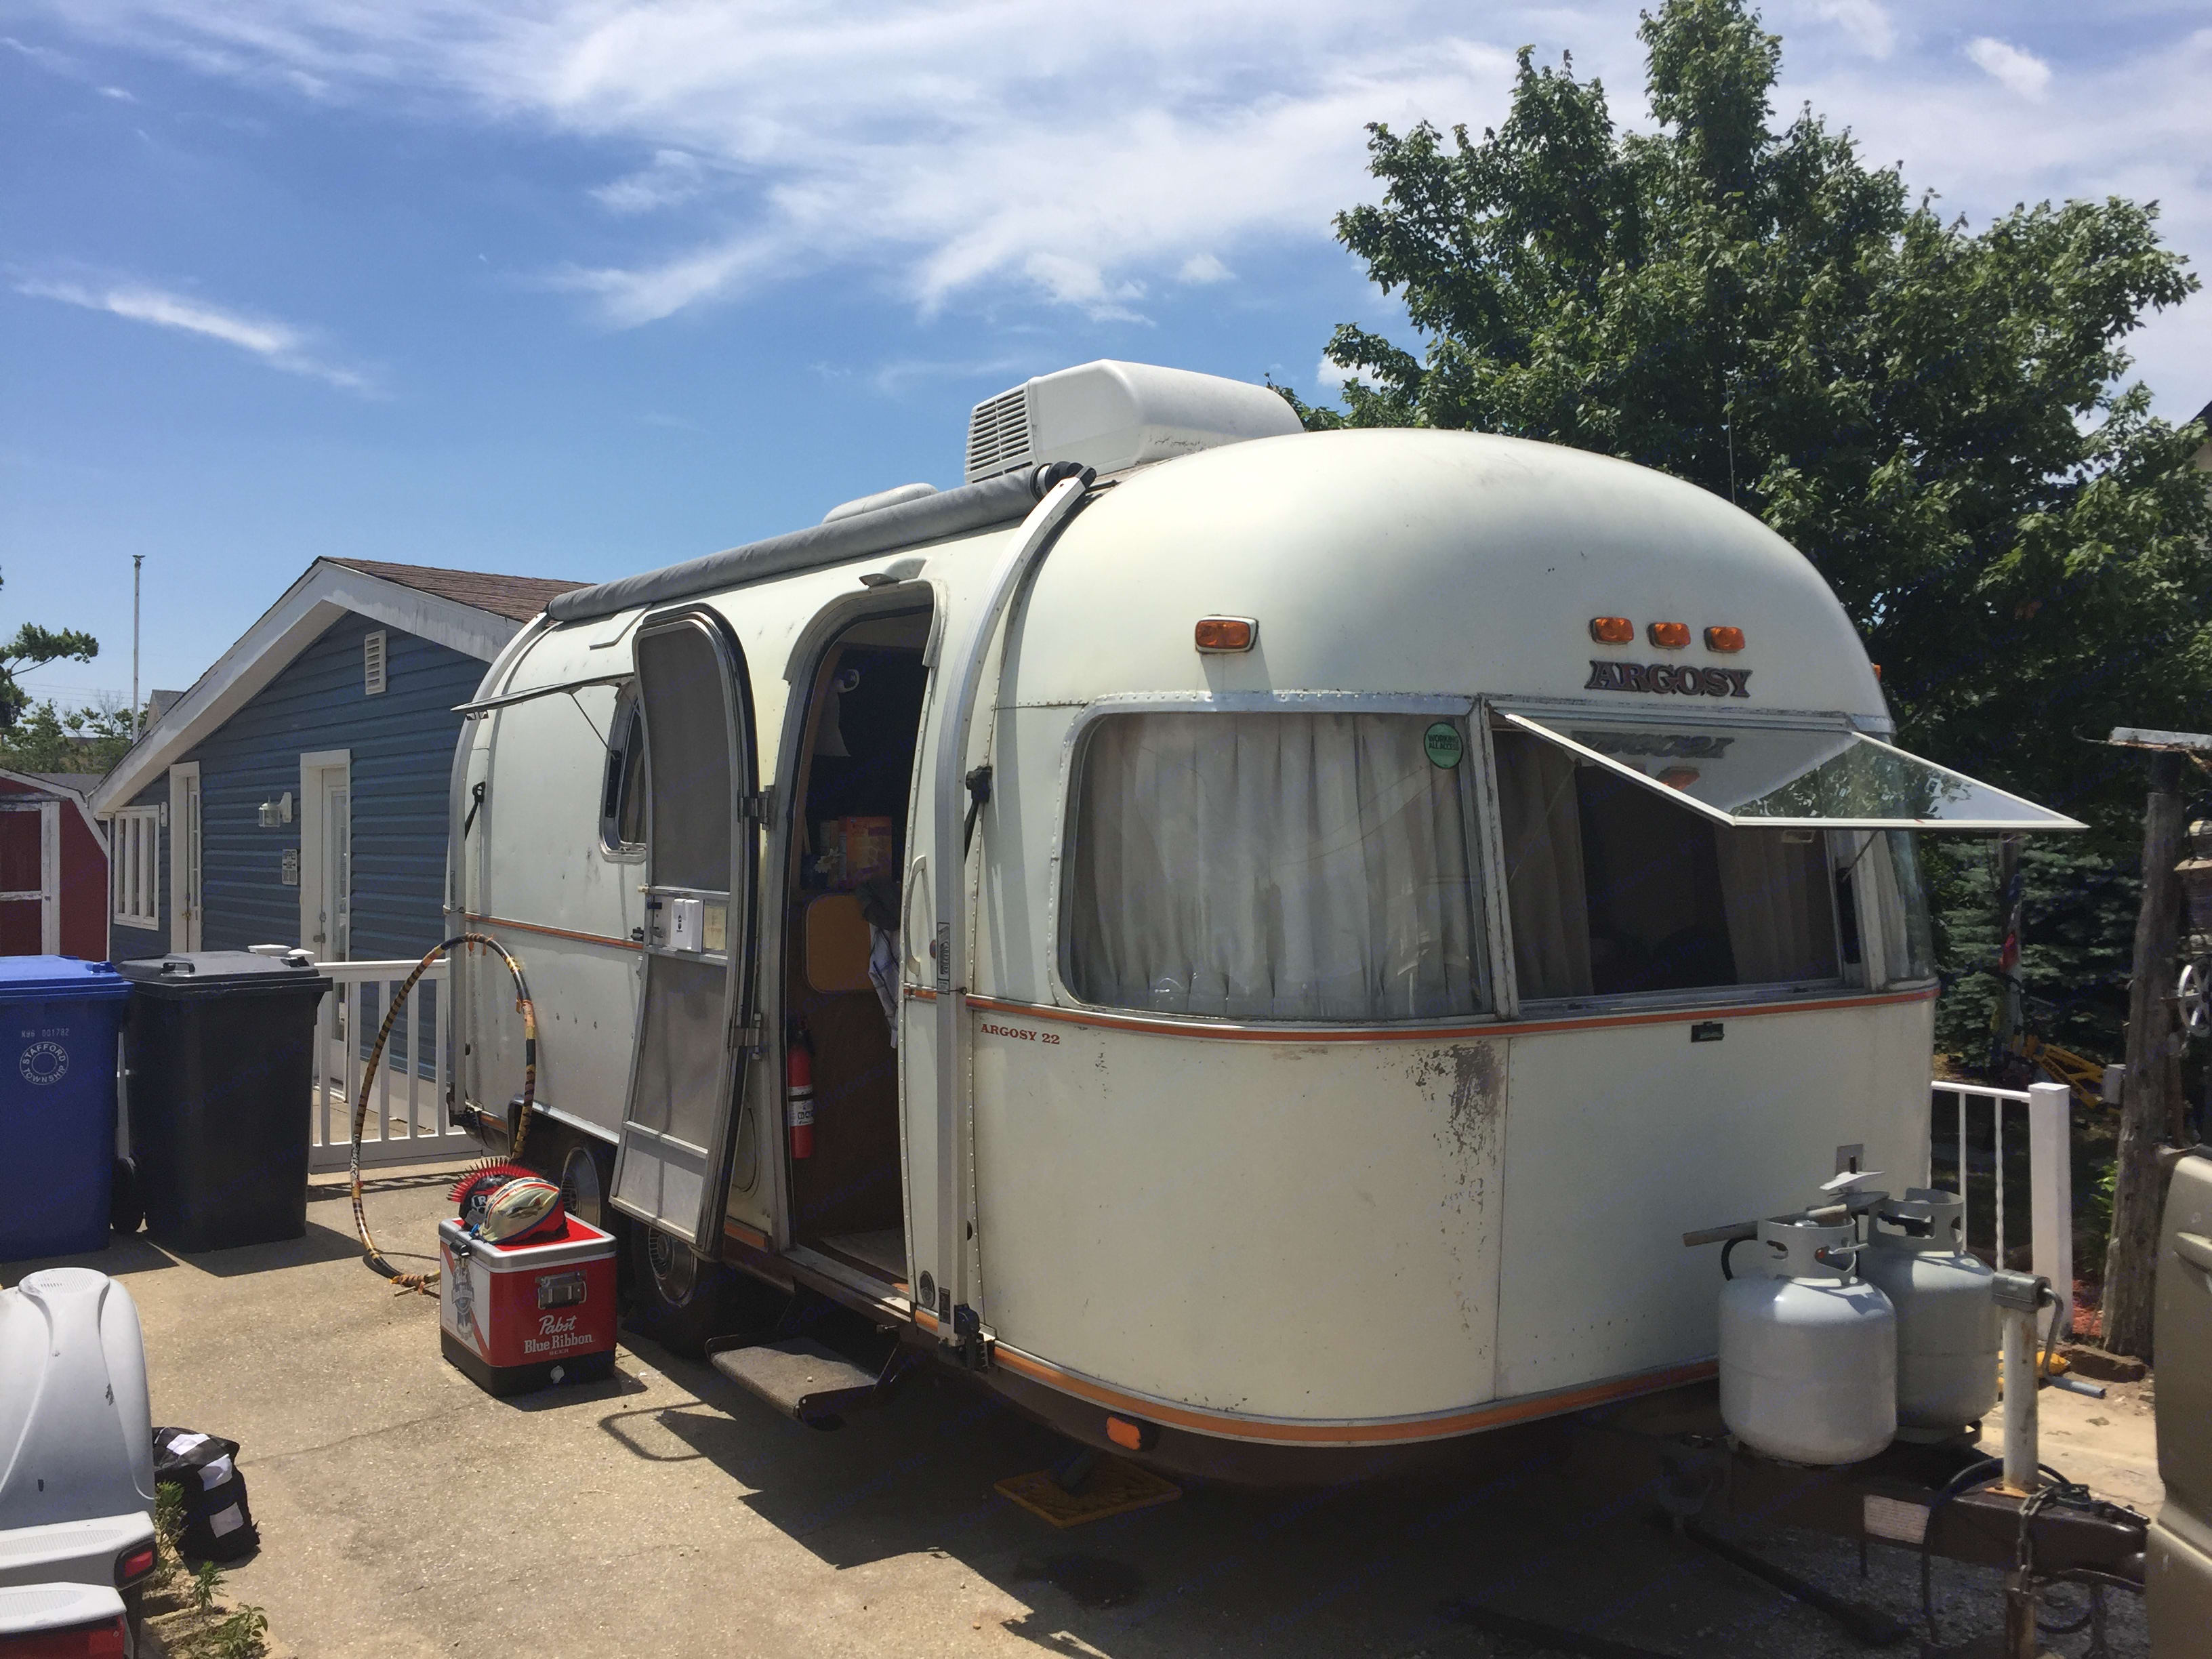 July 4 2018 beach camping. Airstream Argosy 1974